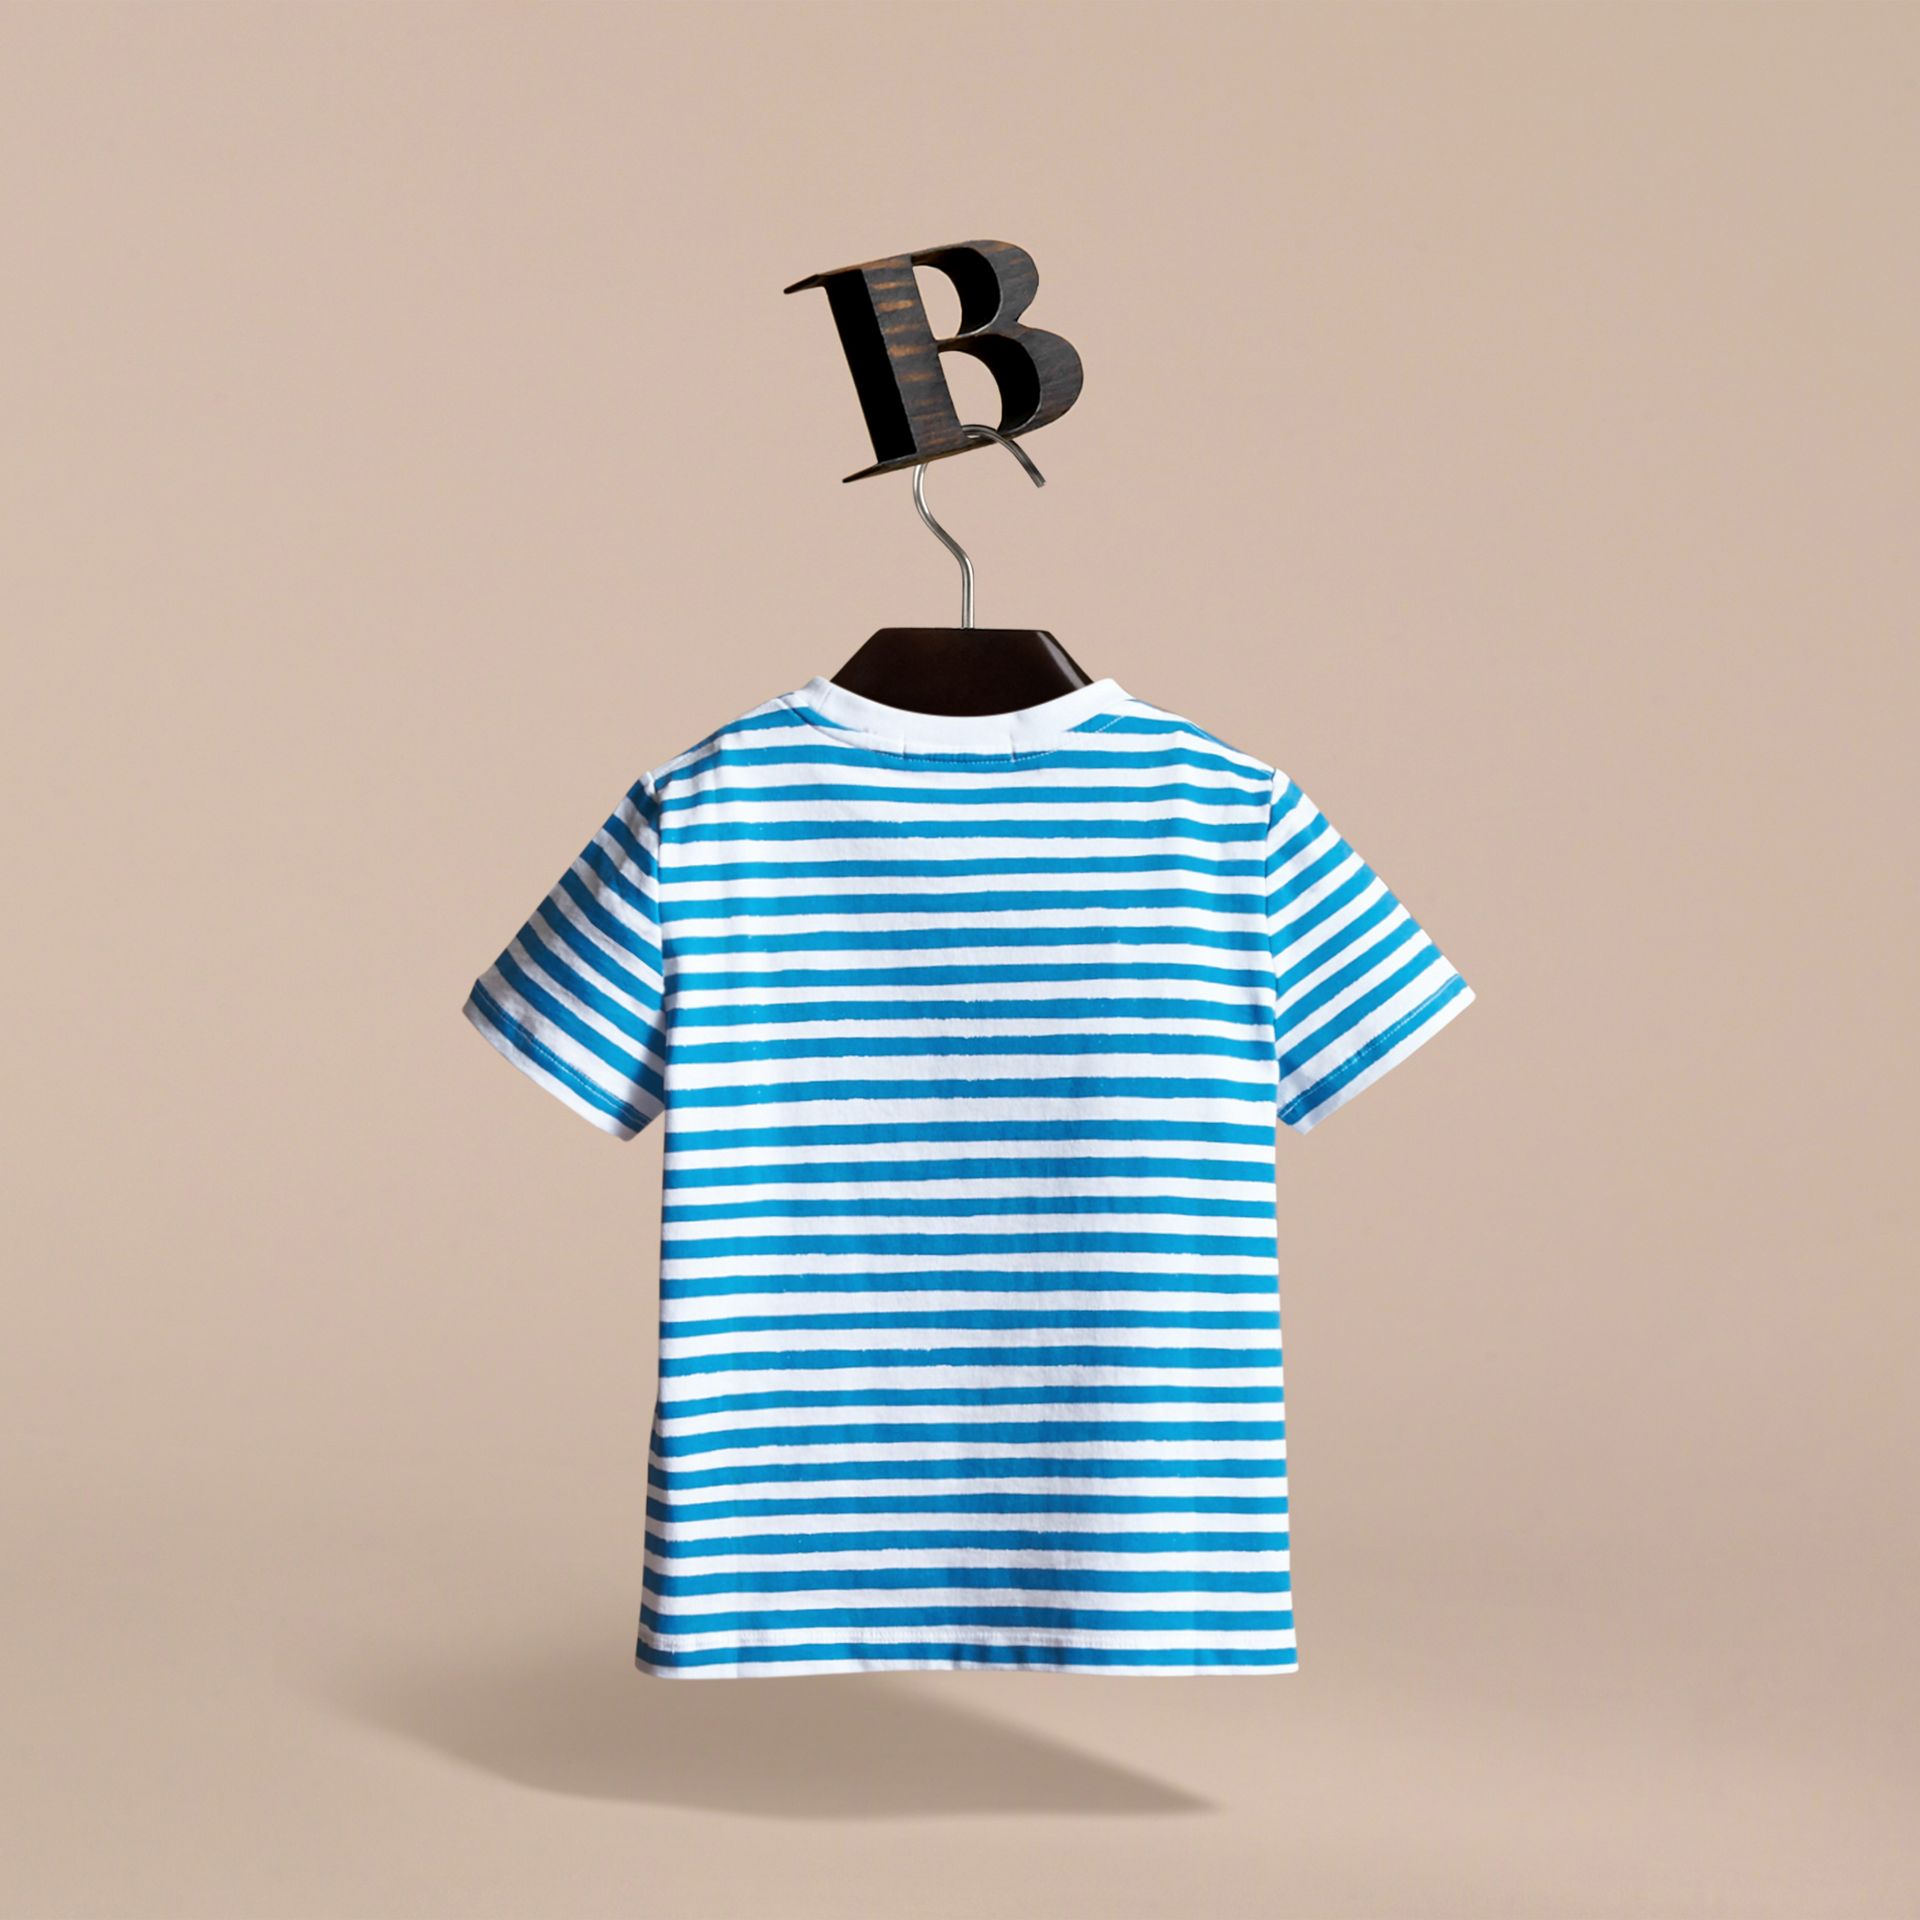 Pallas Heads Print Striped Cotton T-shirt in White - Boy | Burberry - gallery image 4